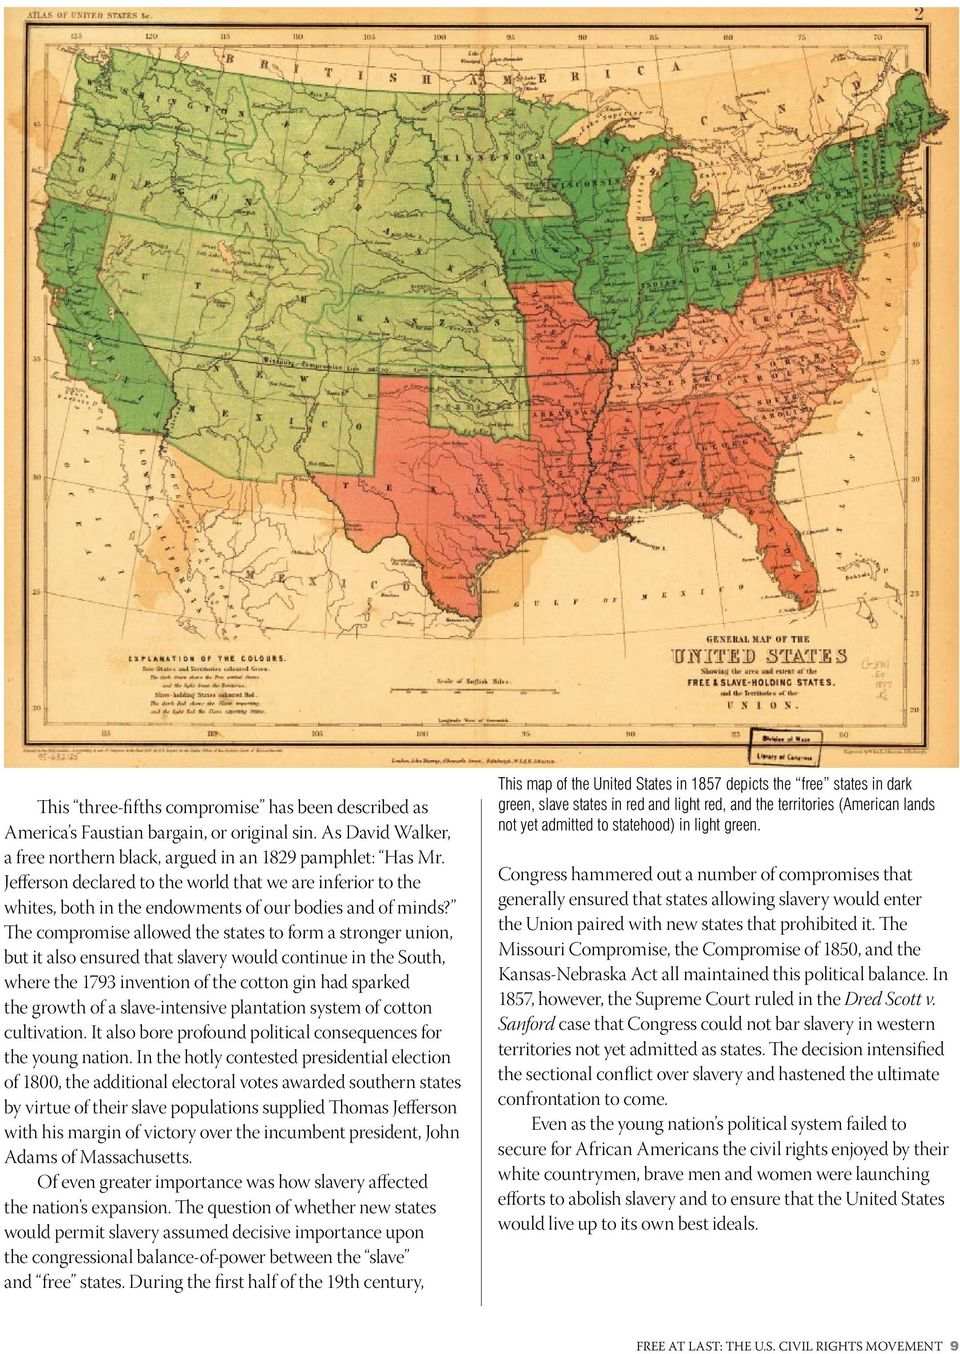 The compromise allowed the states to form a stronger union, but it also ensured that slavery would continue in the South, where the 1793 invention of the cotton gin had sparked the growth of a